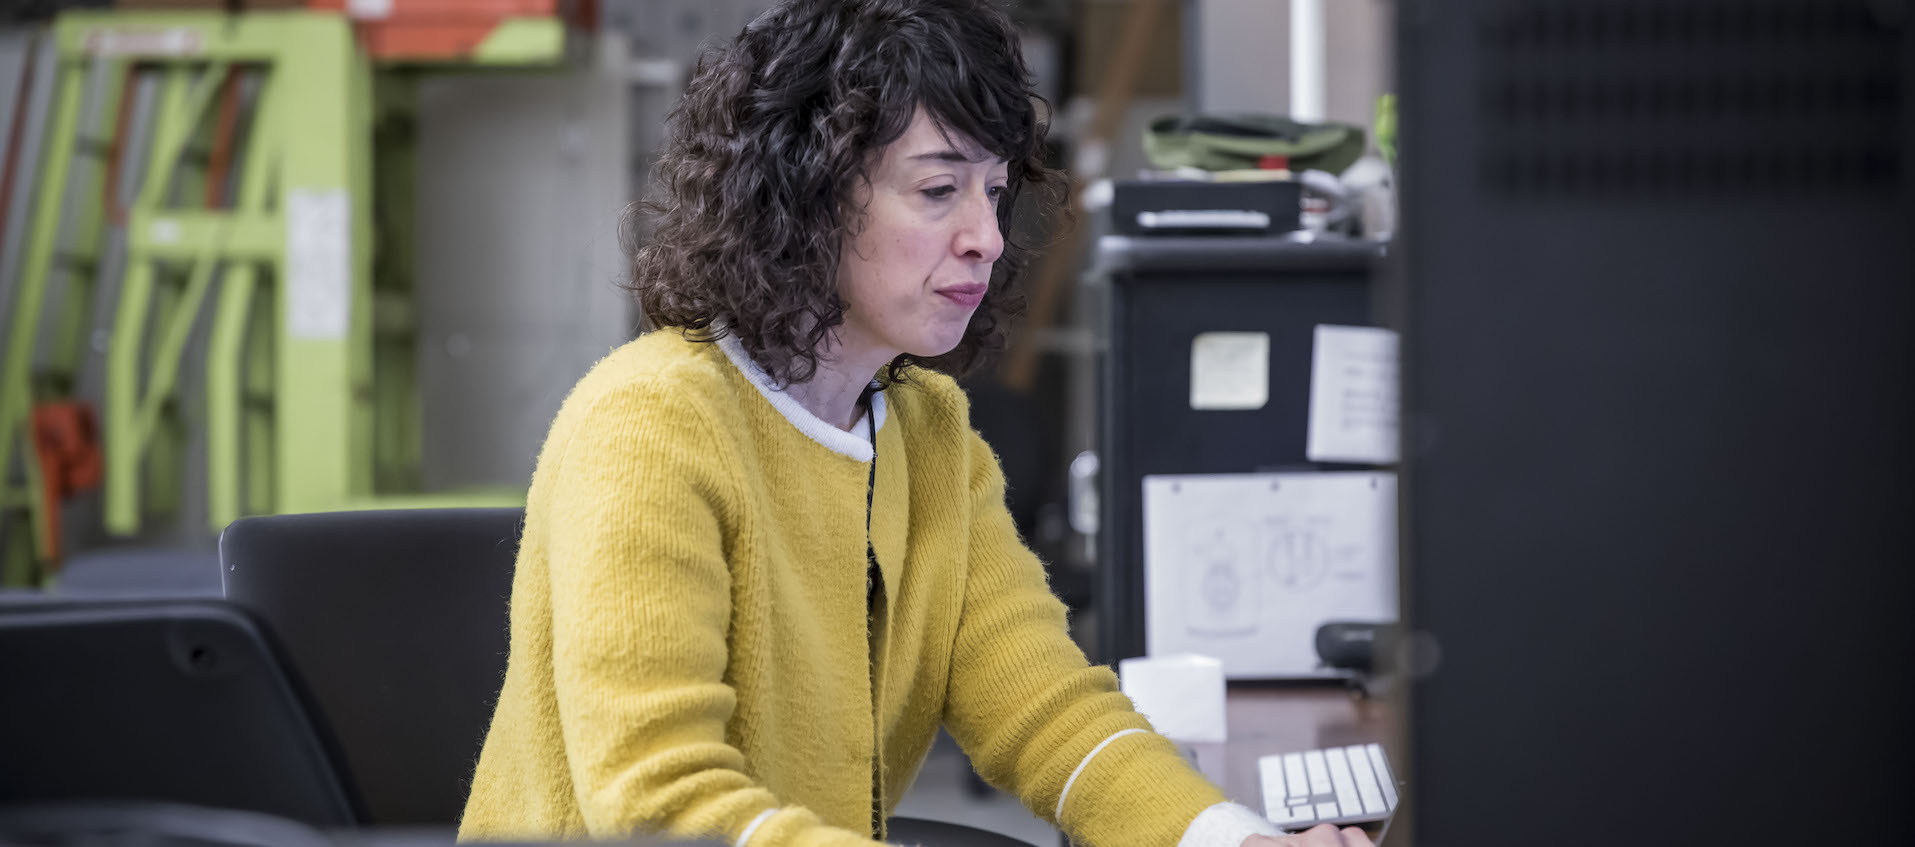 Artist and filmmaker Hope Ginsburg works on her laptop computer in the Wexner Center Film/Video Studio in October 2018.